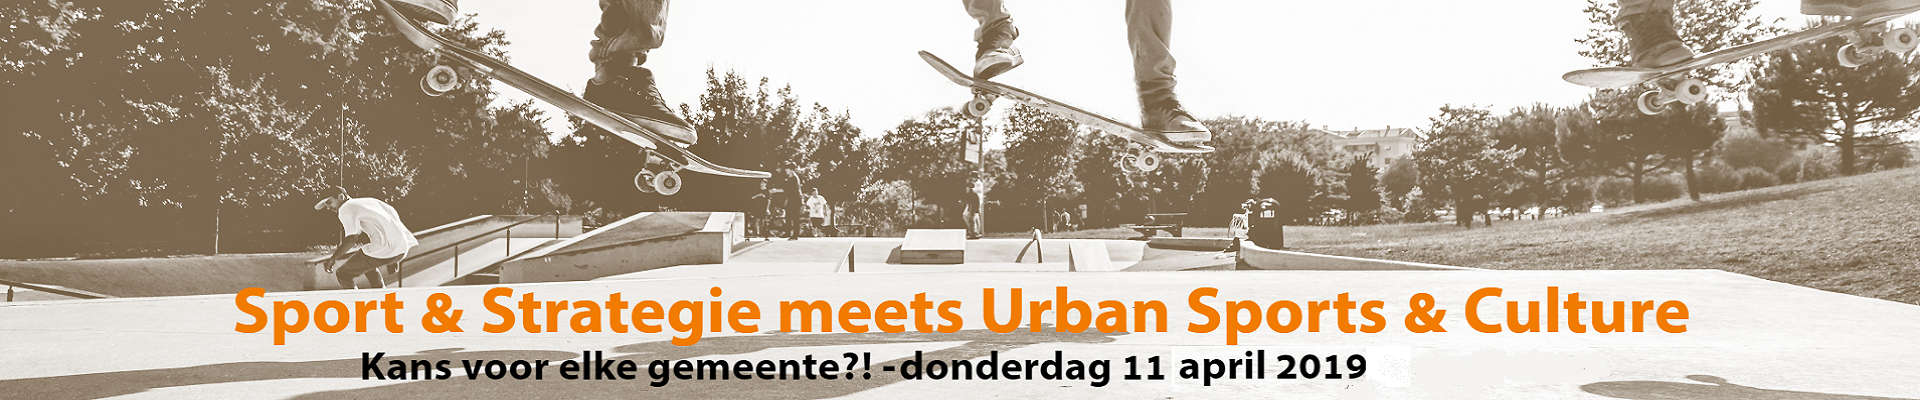 Sport & Strategie meets Urban Sports & Culture